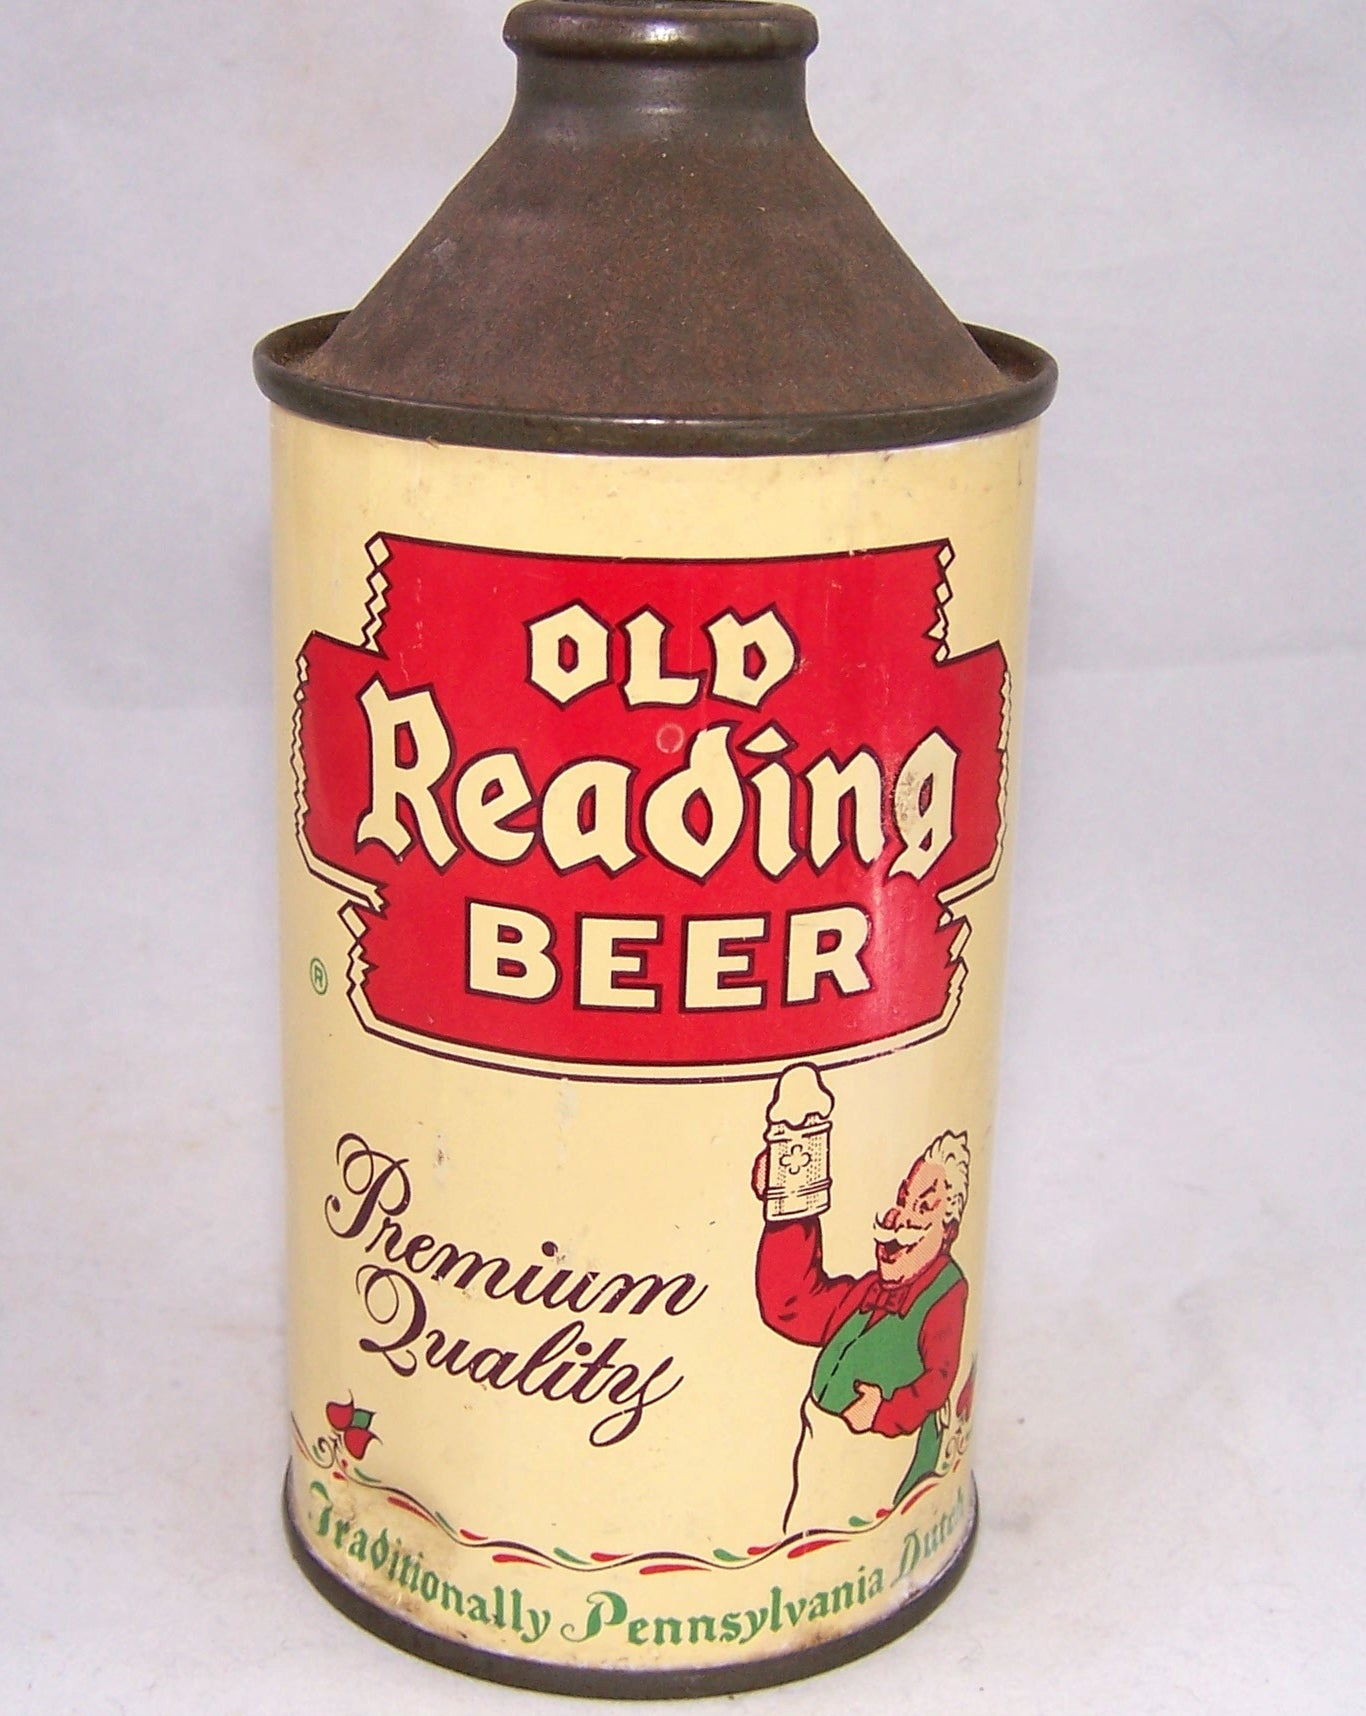 Old Reading Premium Quality Beer, USBC 176-32, Grade 1  Sold on 11/01/17